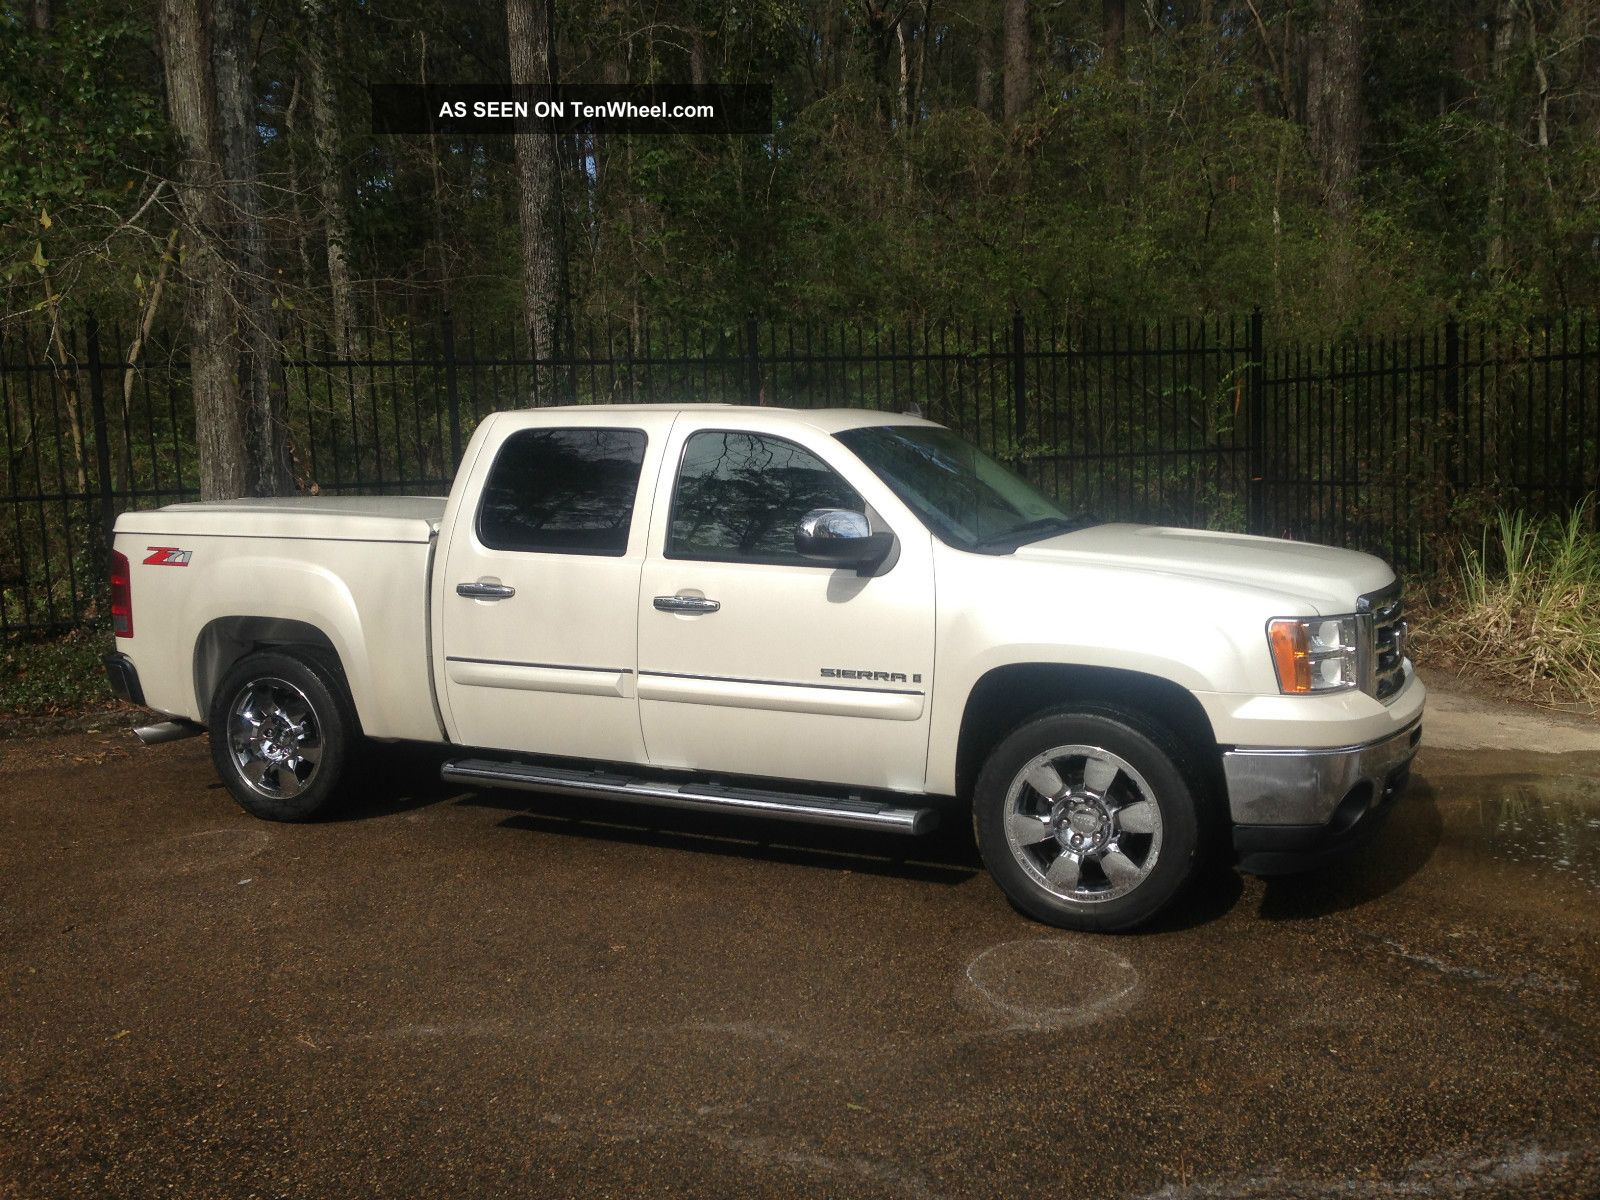 2009 gmc sierra 1500 slt crew cab z71 white diamond edition loaded 2x4. Black Bedroom Furniture Sets. Home Design Ideas